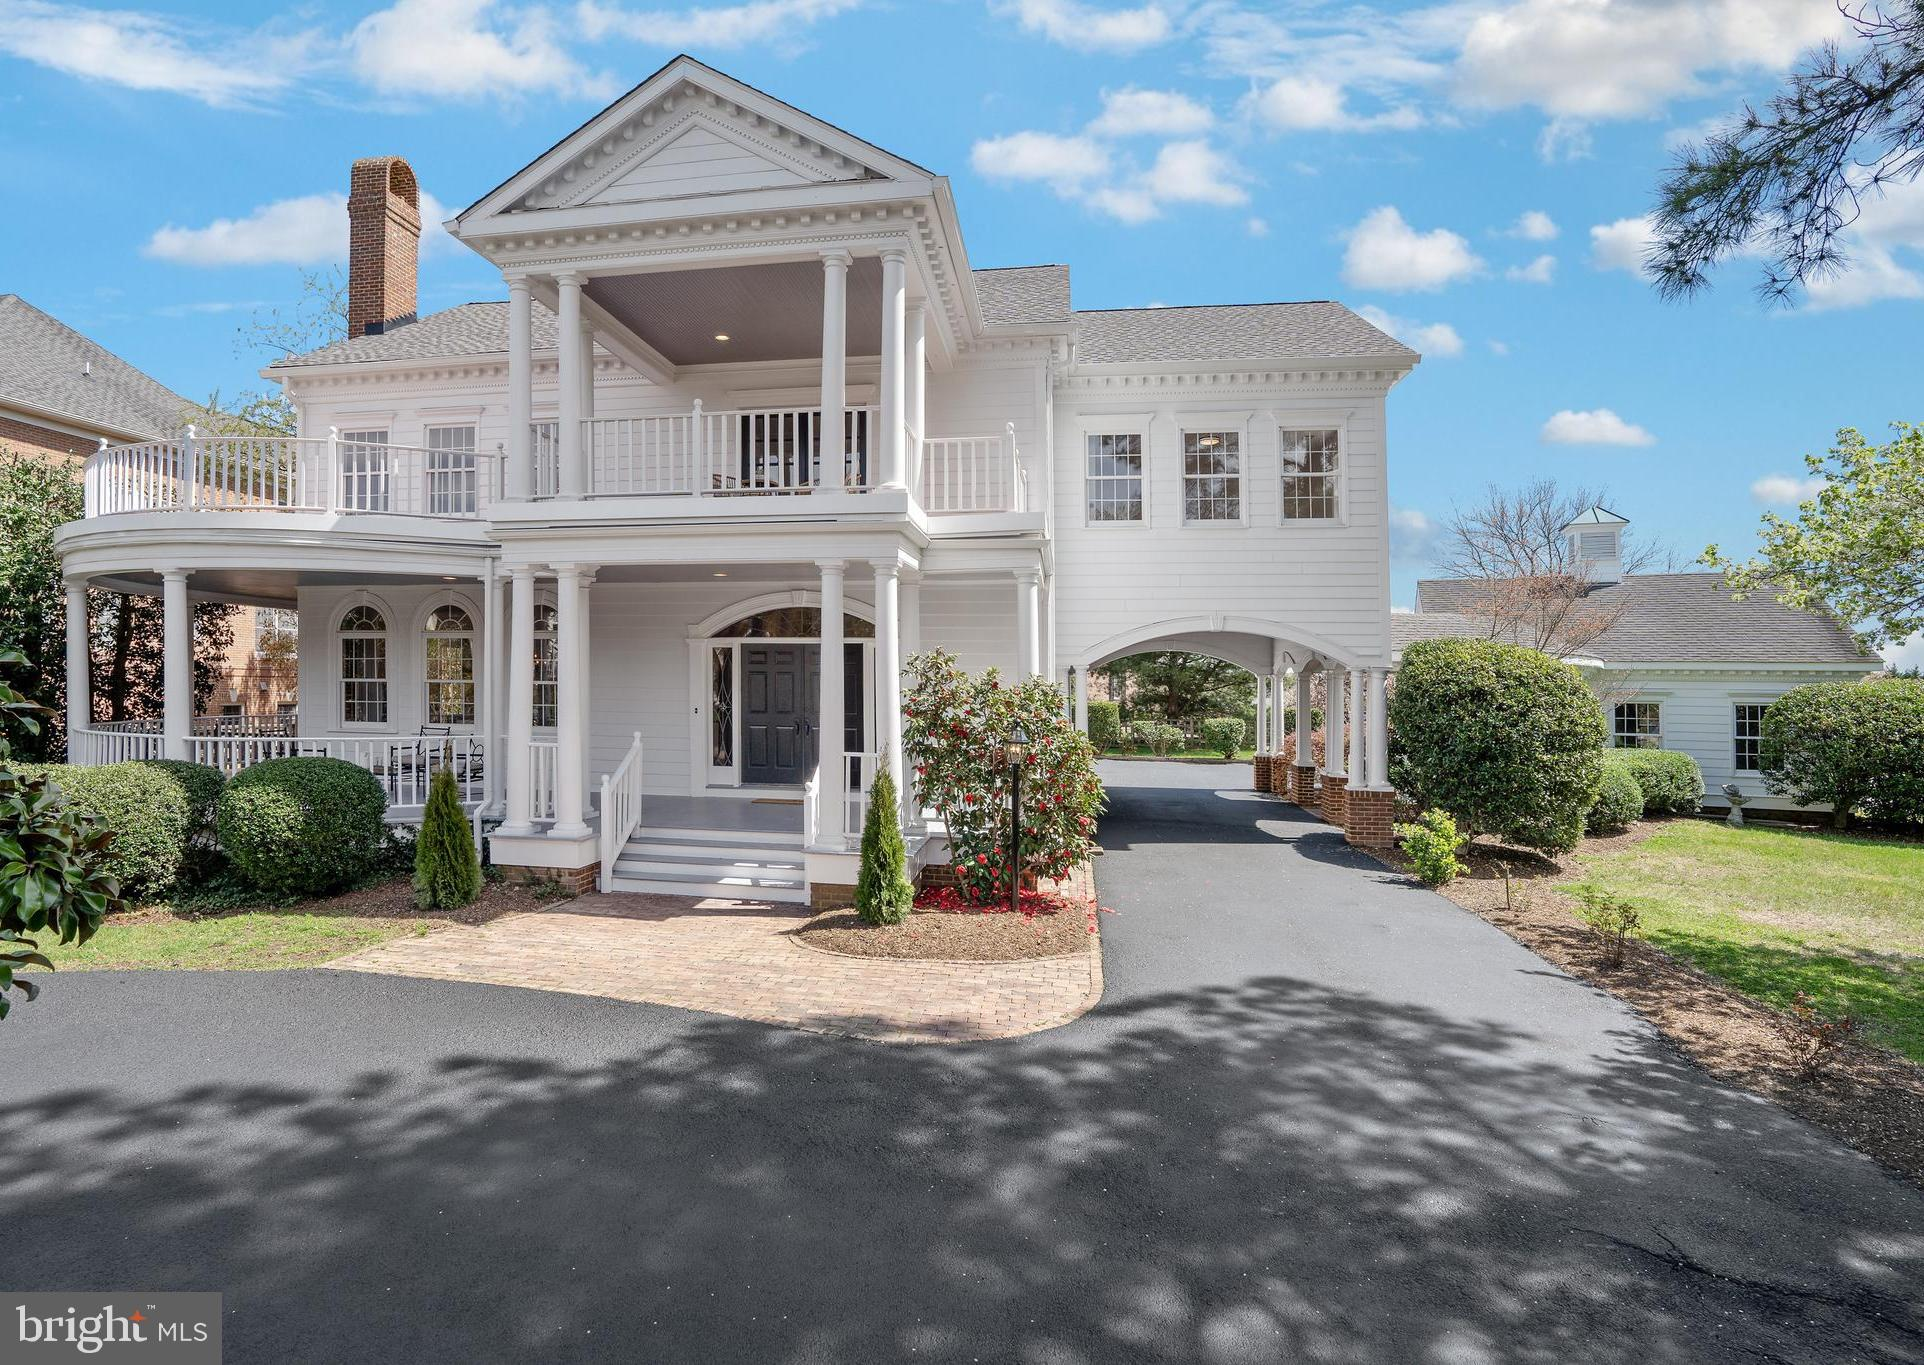 Renovated classic, a true masterpiece! Custom home carefully crafted to capture the charm, character, & graciousness of the Antebellum estate that characterizes the tidewater region of Virginia. Fabulous home is enhanced by its gorgeous setting on beautifully landscaped half acre grounds near river. Classic exterior combined with stunning renovated interior make this home completely turn key. Special features include: stately high ceilings, elegant trim detail, stained hardwood floors throughout. brand new chef's kitchen, 4 bedrooms, 4.5 updated baths, two wood burning fireplaces, stunning glass walls in family room, and private main level study with gorgeous stained wooden built ins, each bedroom has it's own private bath and stunning river views from expansive master suite with designer bath and huge walk in closet, spacious rear deck, and massive 2 story veranda. If you're tired of the mundane and are interested in a true turn key custom property, this is it!